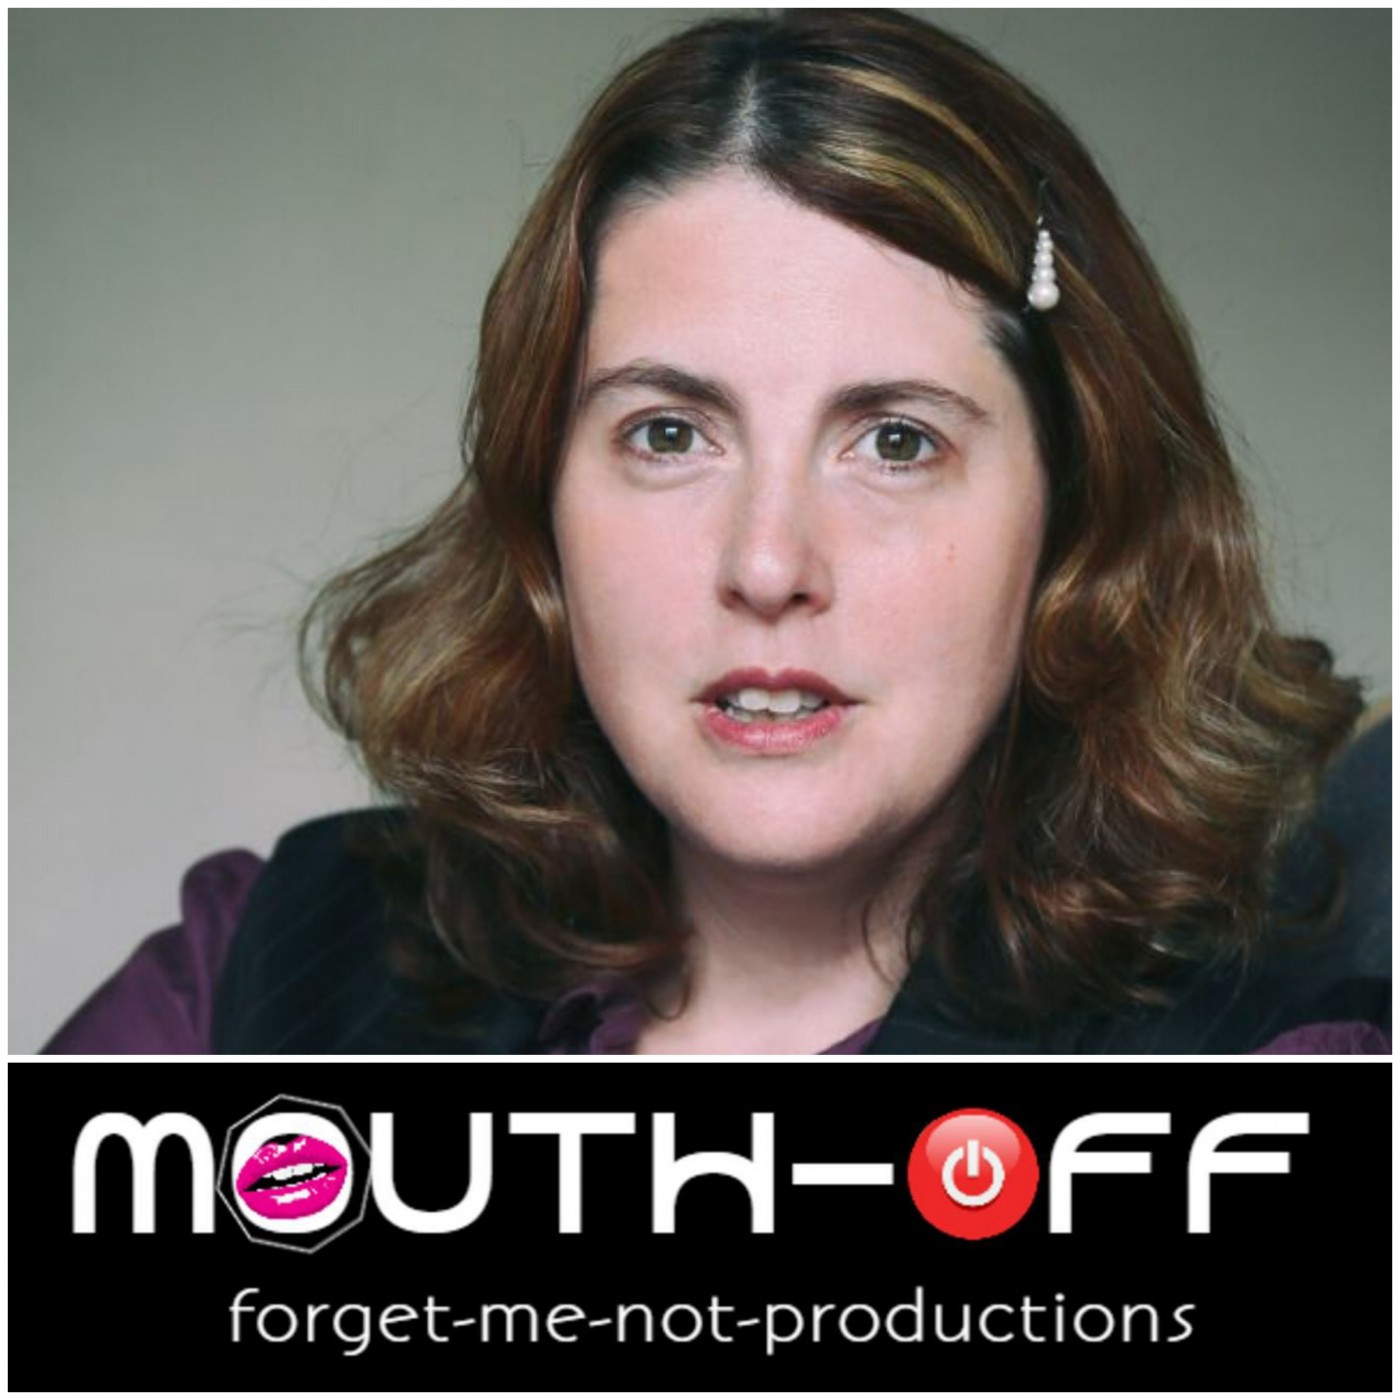 Mouth-Off Episode 13: Exclusive or inclusive?